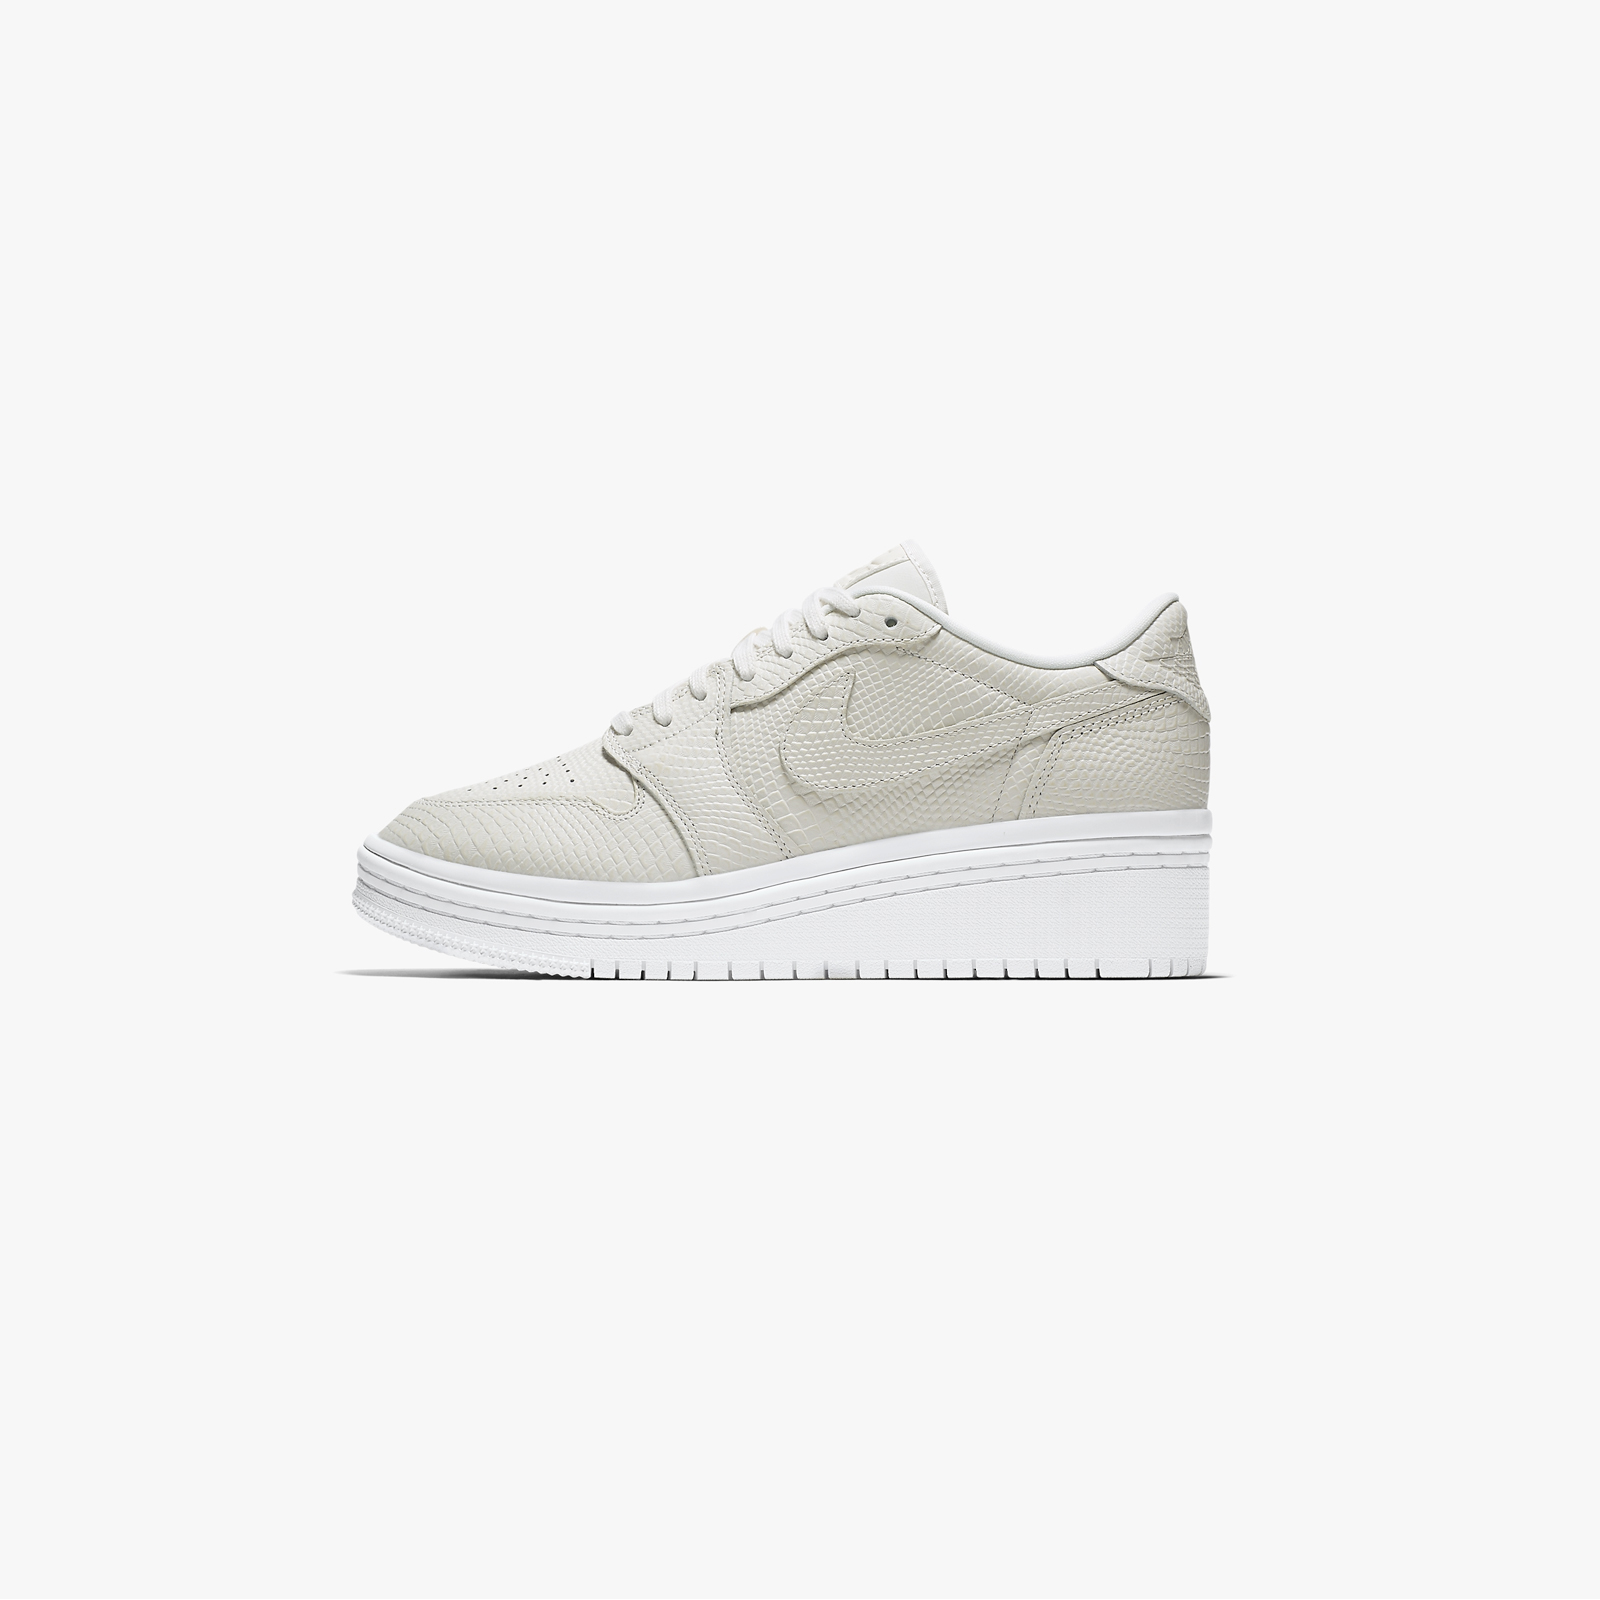 lowest price 2750f 4b26a Jordan Brand Air Jordan 1 Retro Low Lifted - Ao1334-004 - Sneakersnstuff |  sneakers & streetwear på nätet sen 1999